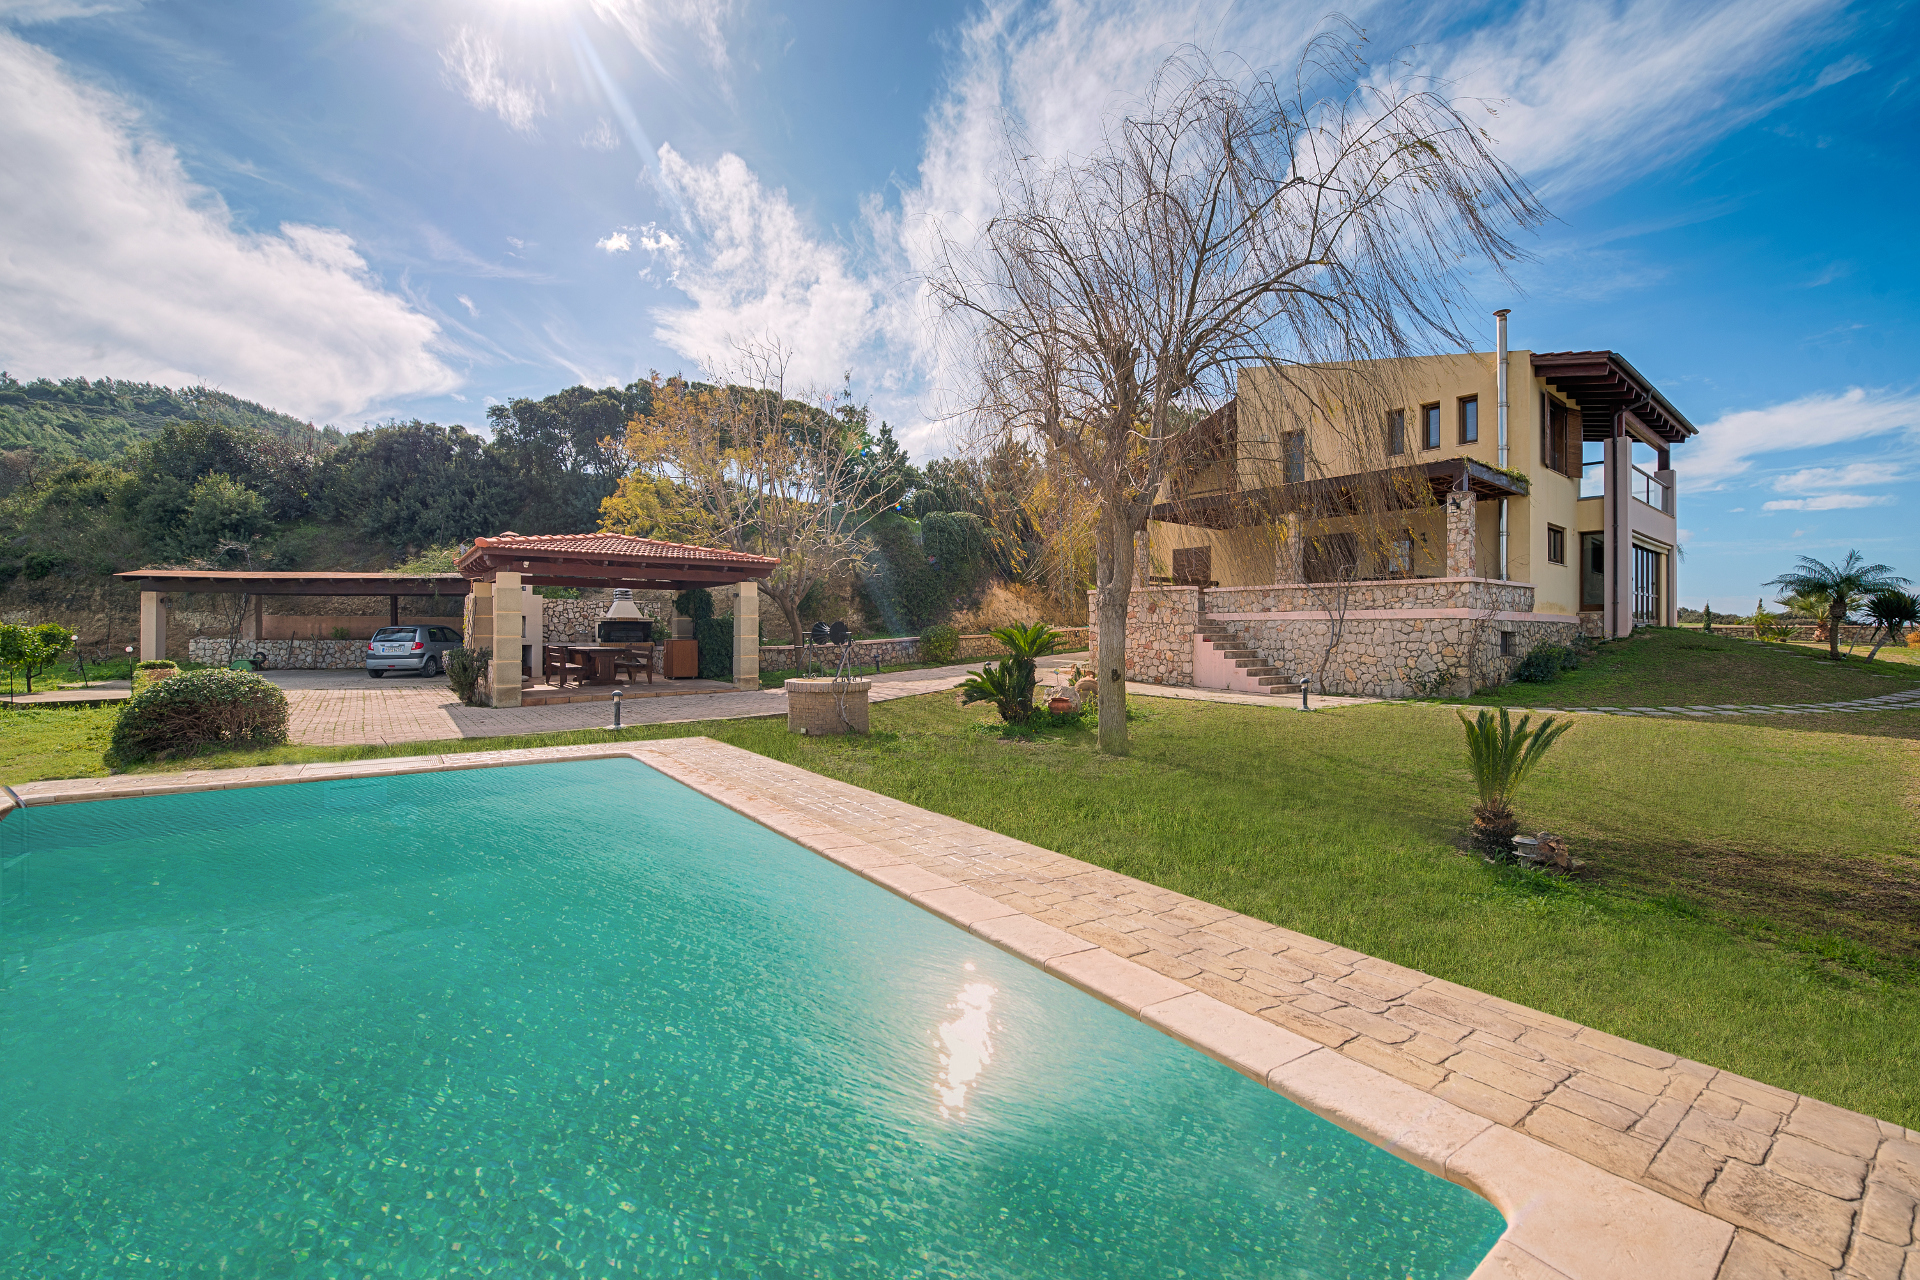 Accommodation Villa Russelia In Rhodes Greece - Rhodos Luxusvilla